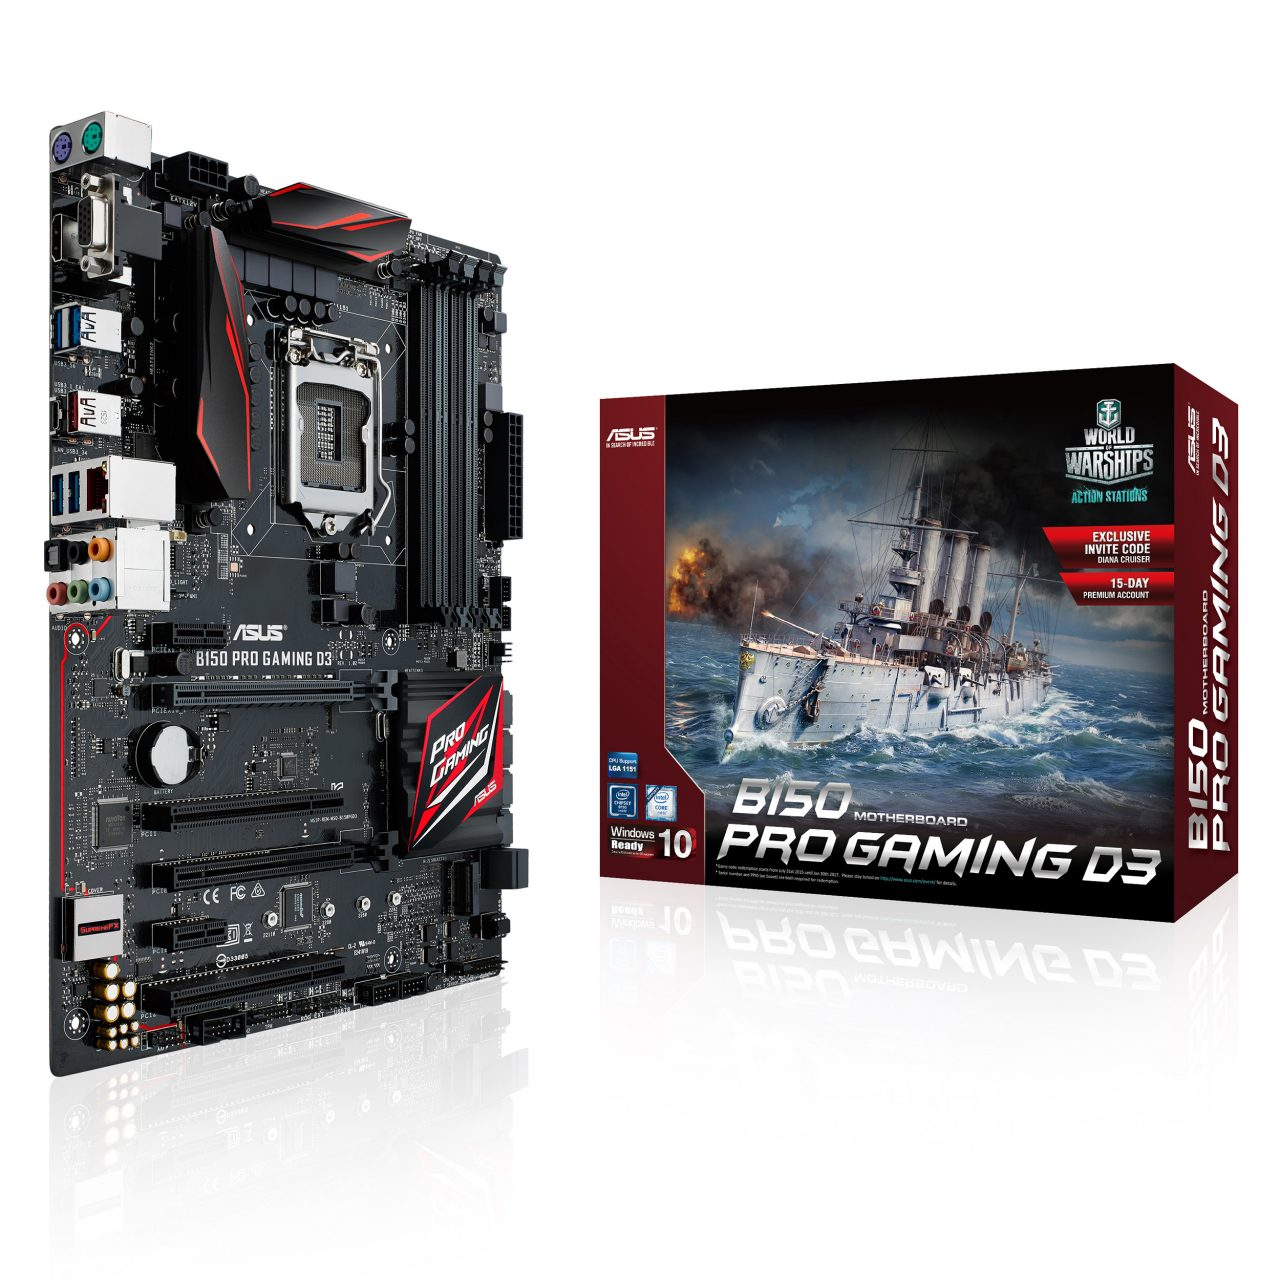 B150 Pro Gaming D3_3Dbox+MB (WOW version)